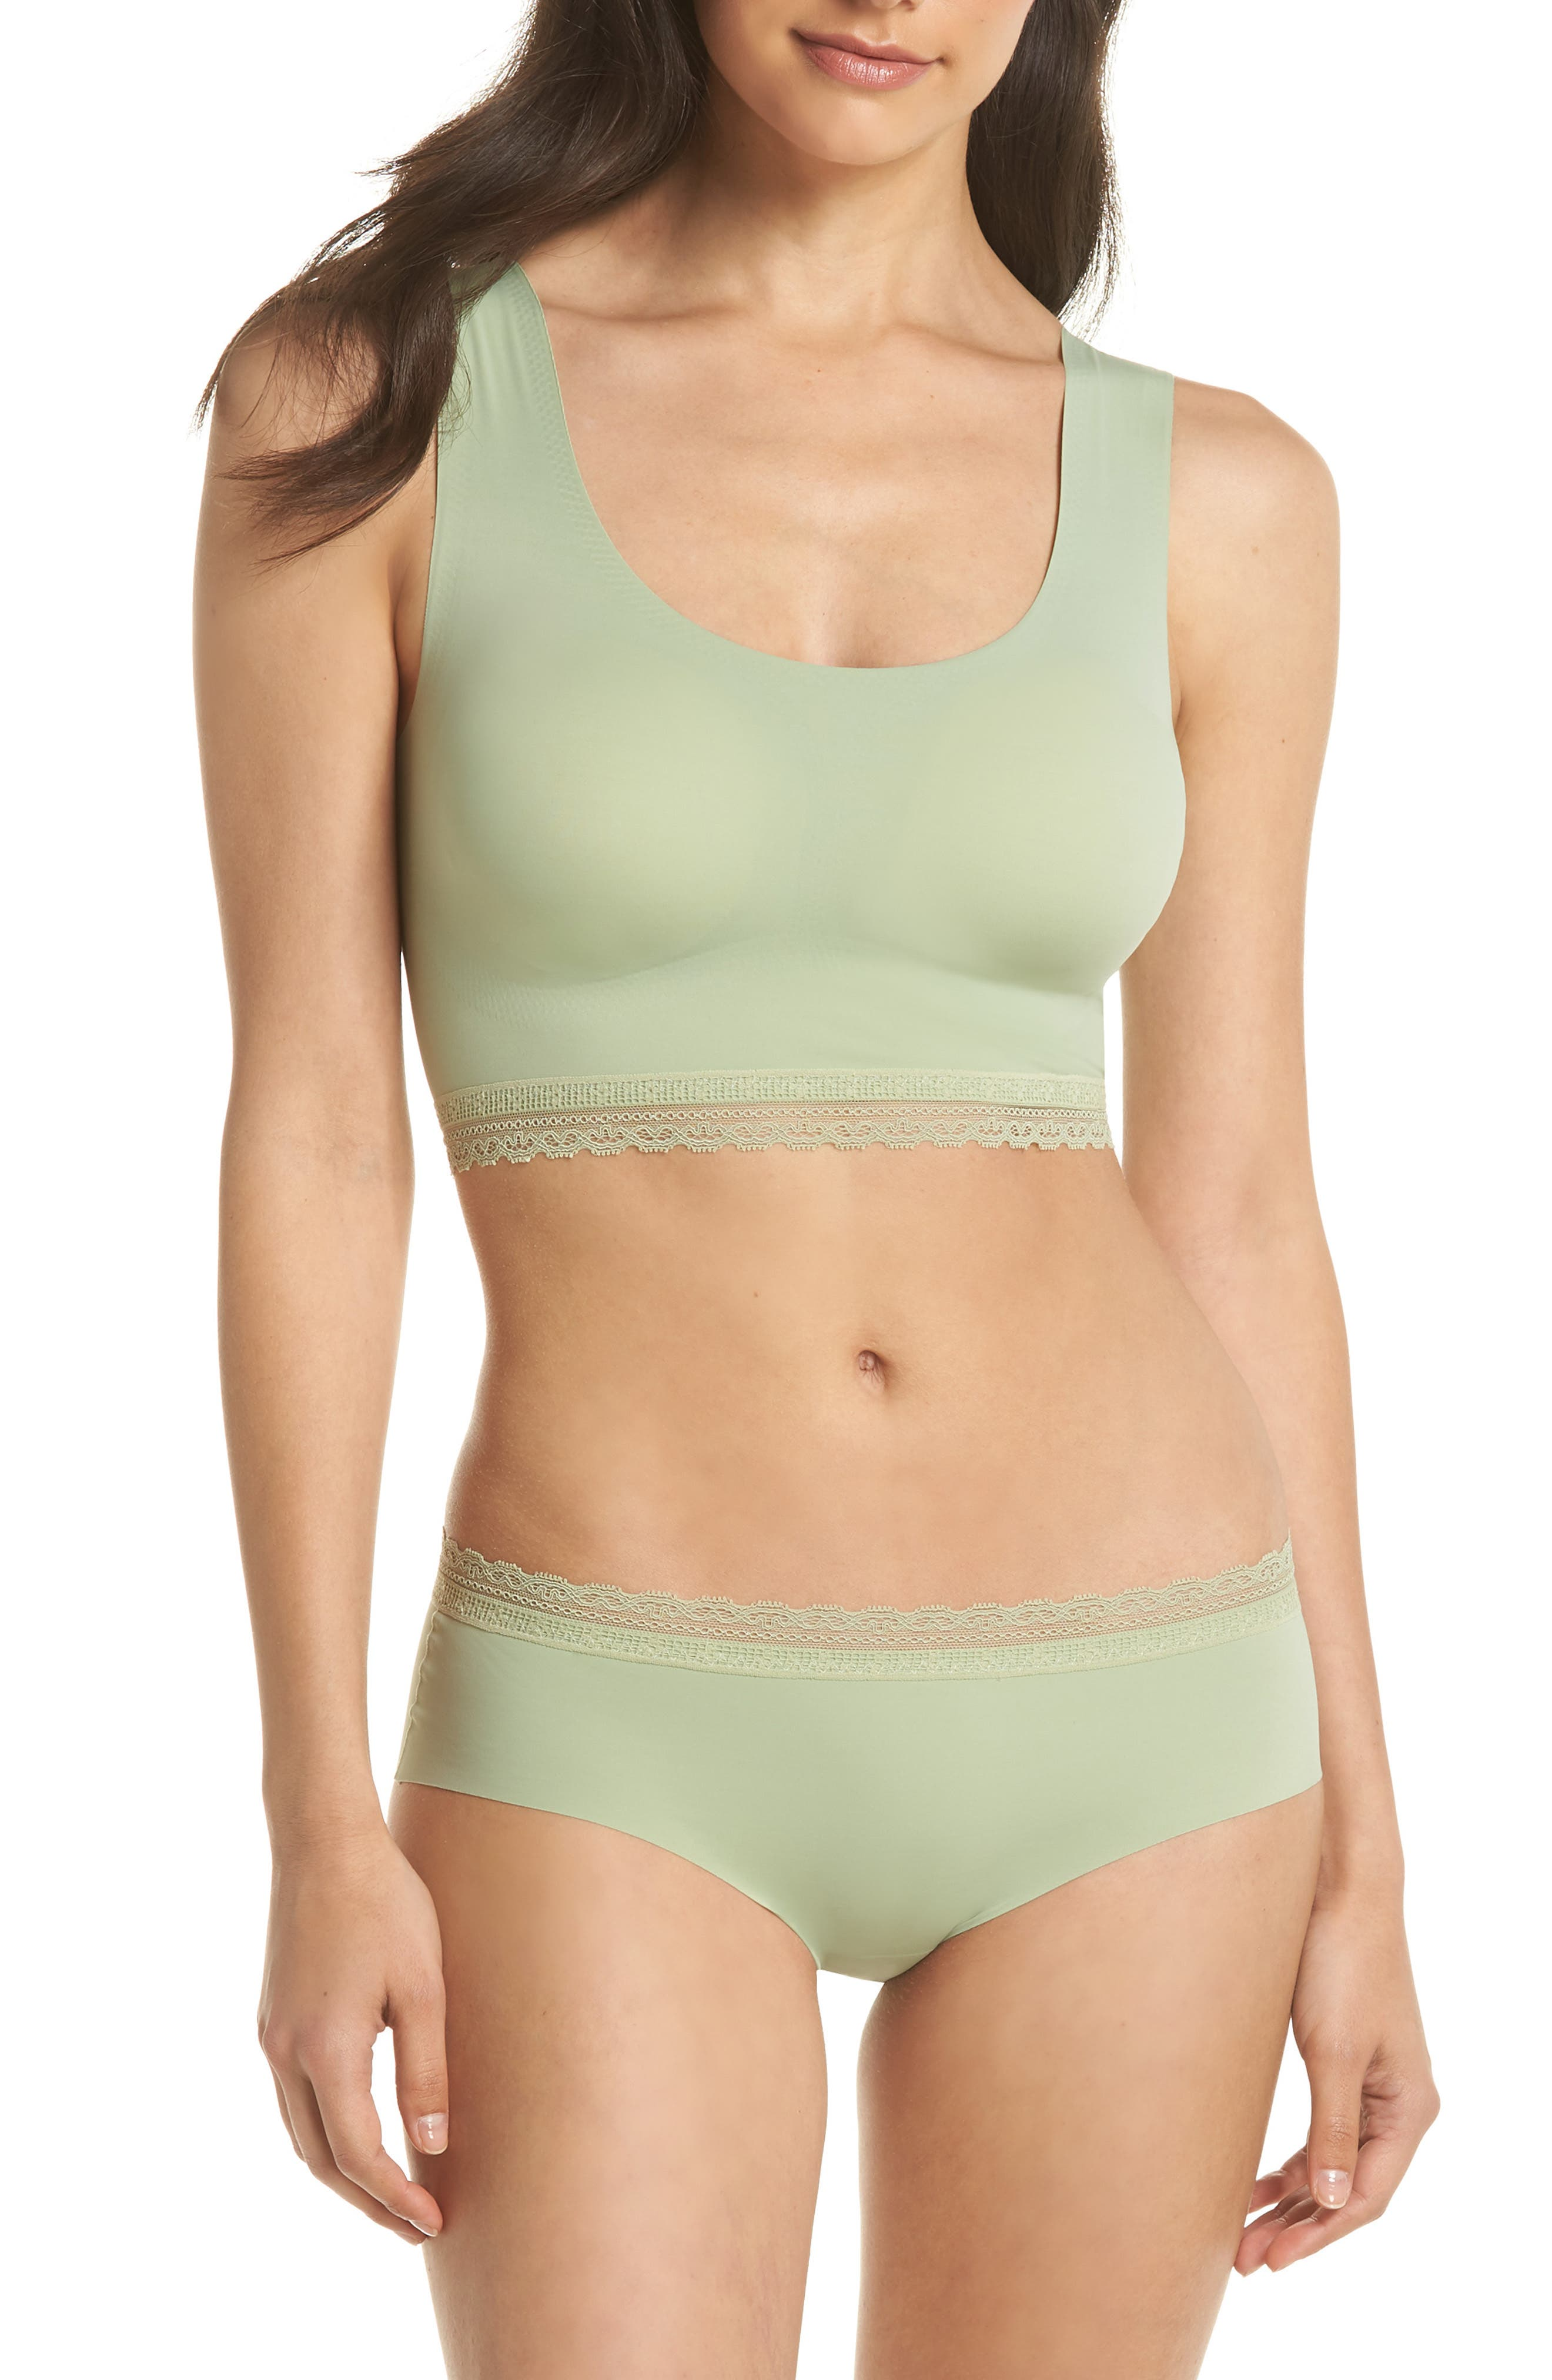 Almost Naked Lace Trim Hipster Briefs,                             Alternate thumbnail 4, color,                             Green Tea